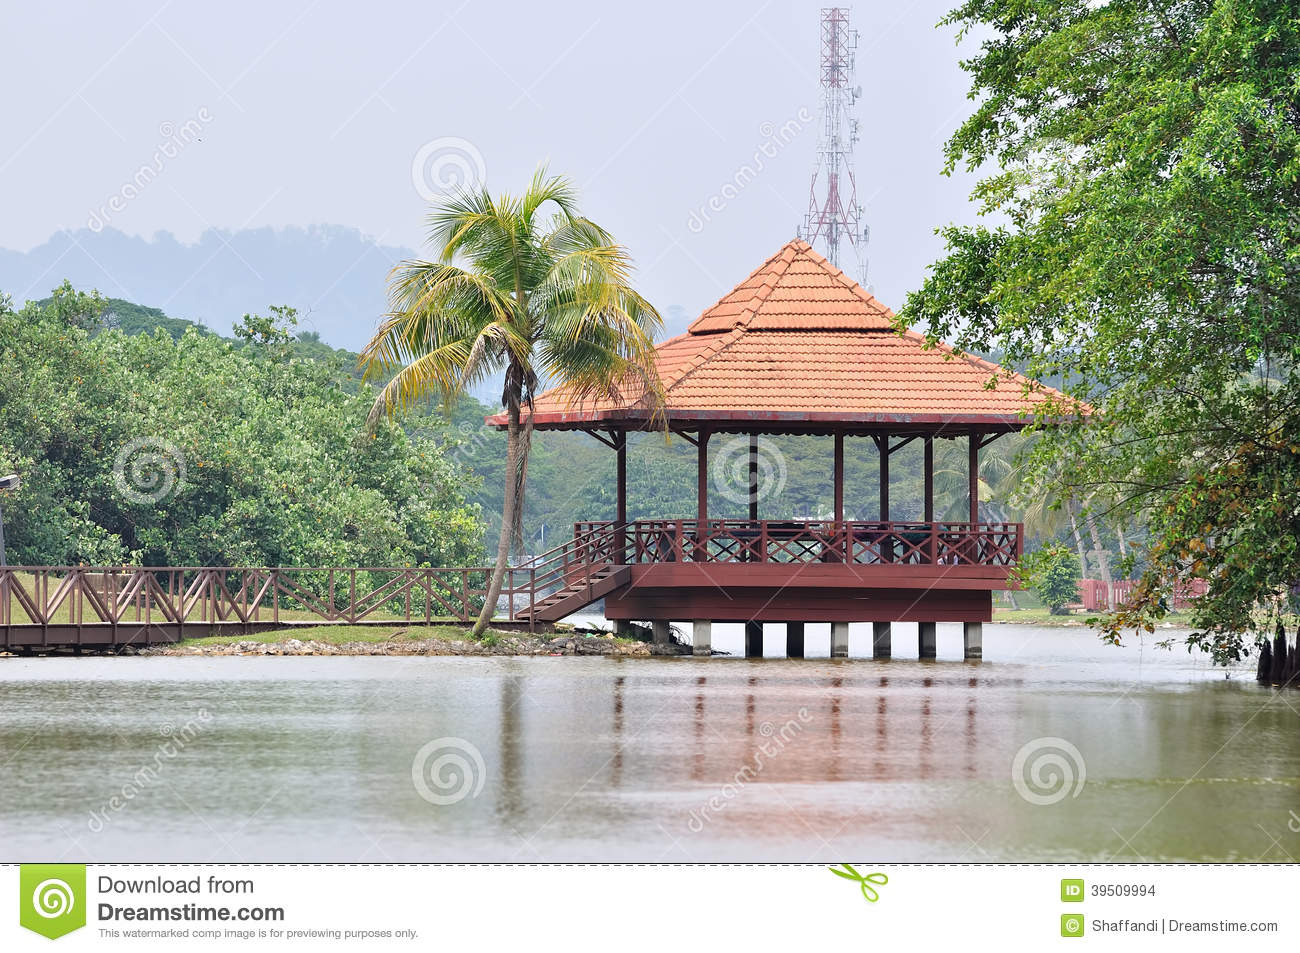 The wooden gazebo